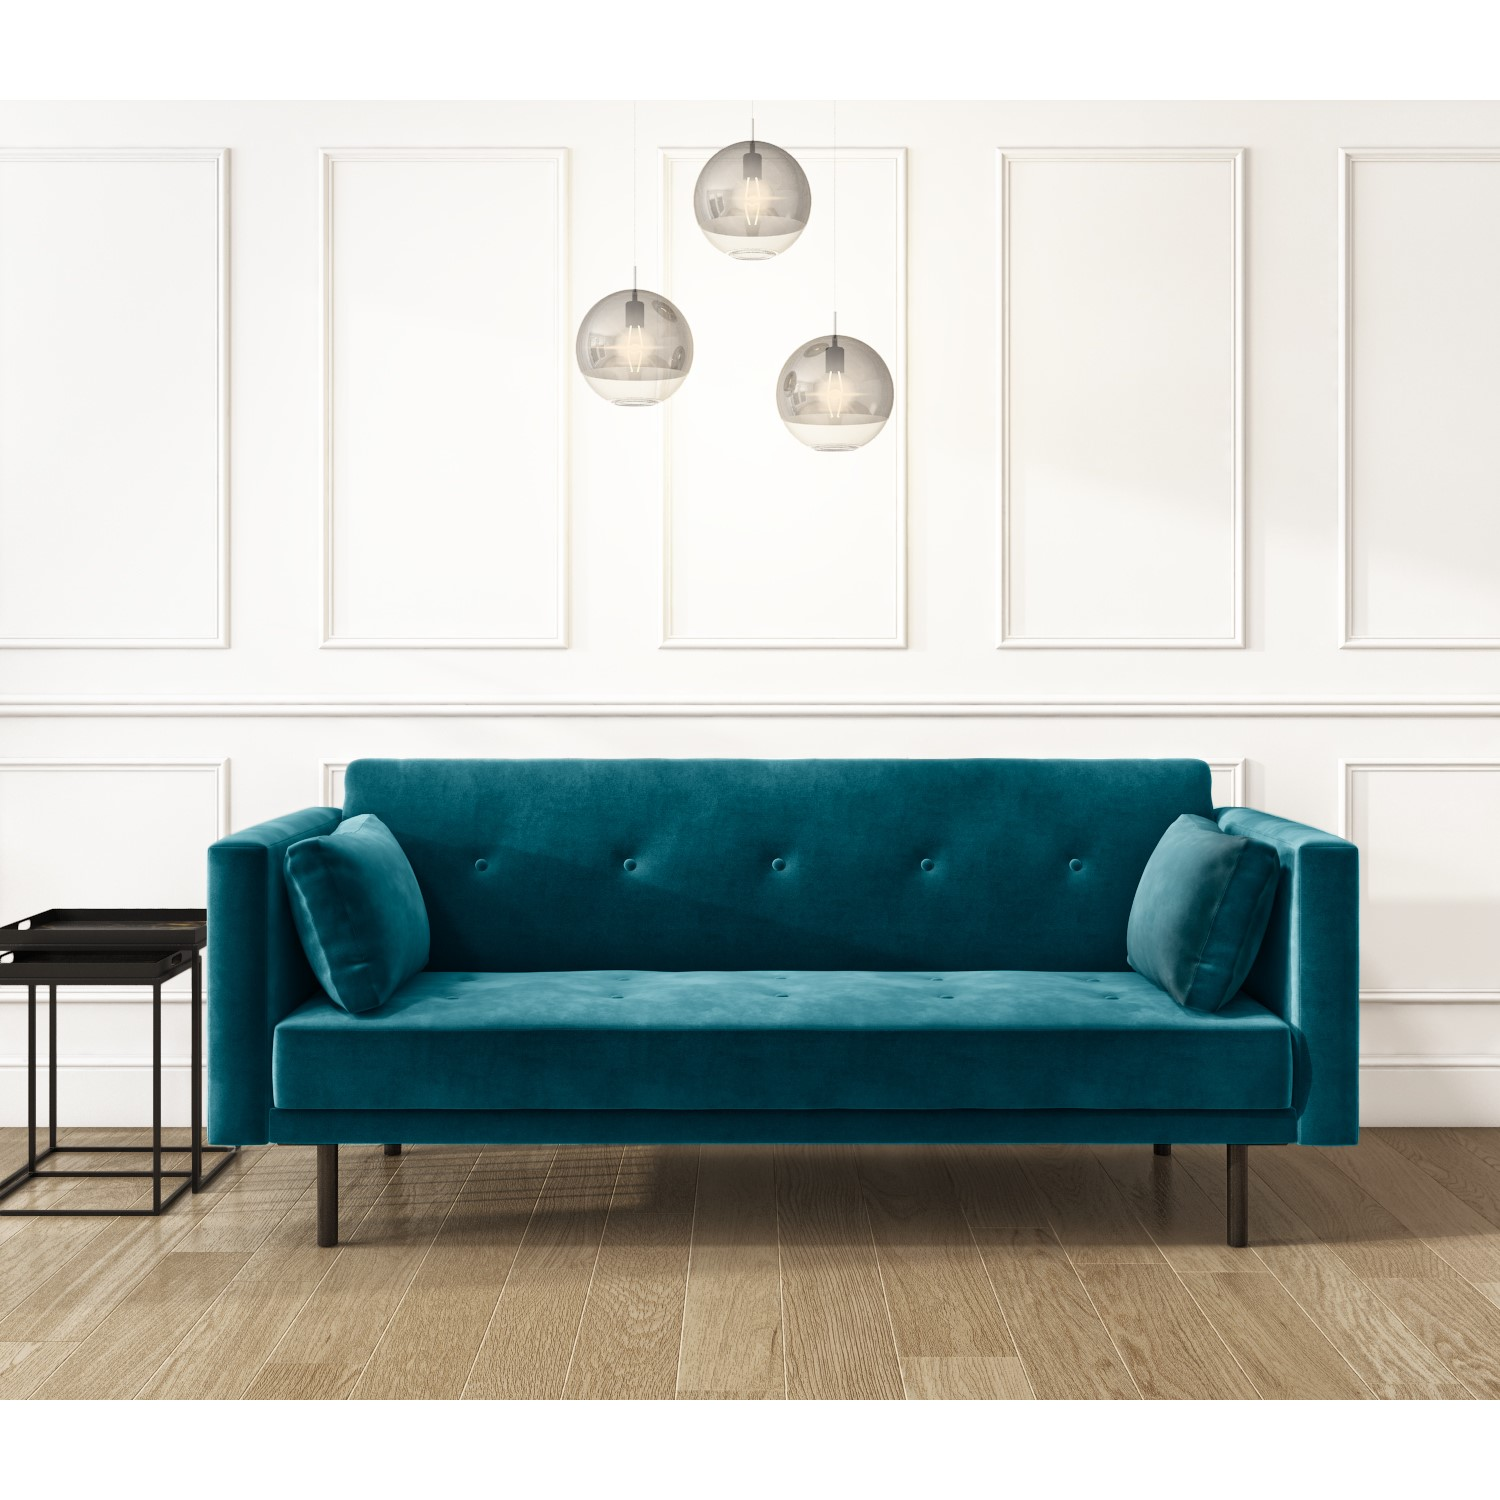 Velvet Sofa Bed In Teal Blue With Buttons Seats 3 Rory Furniture123